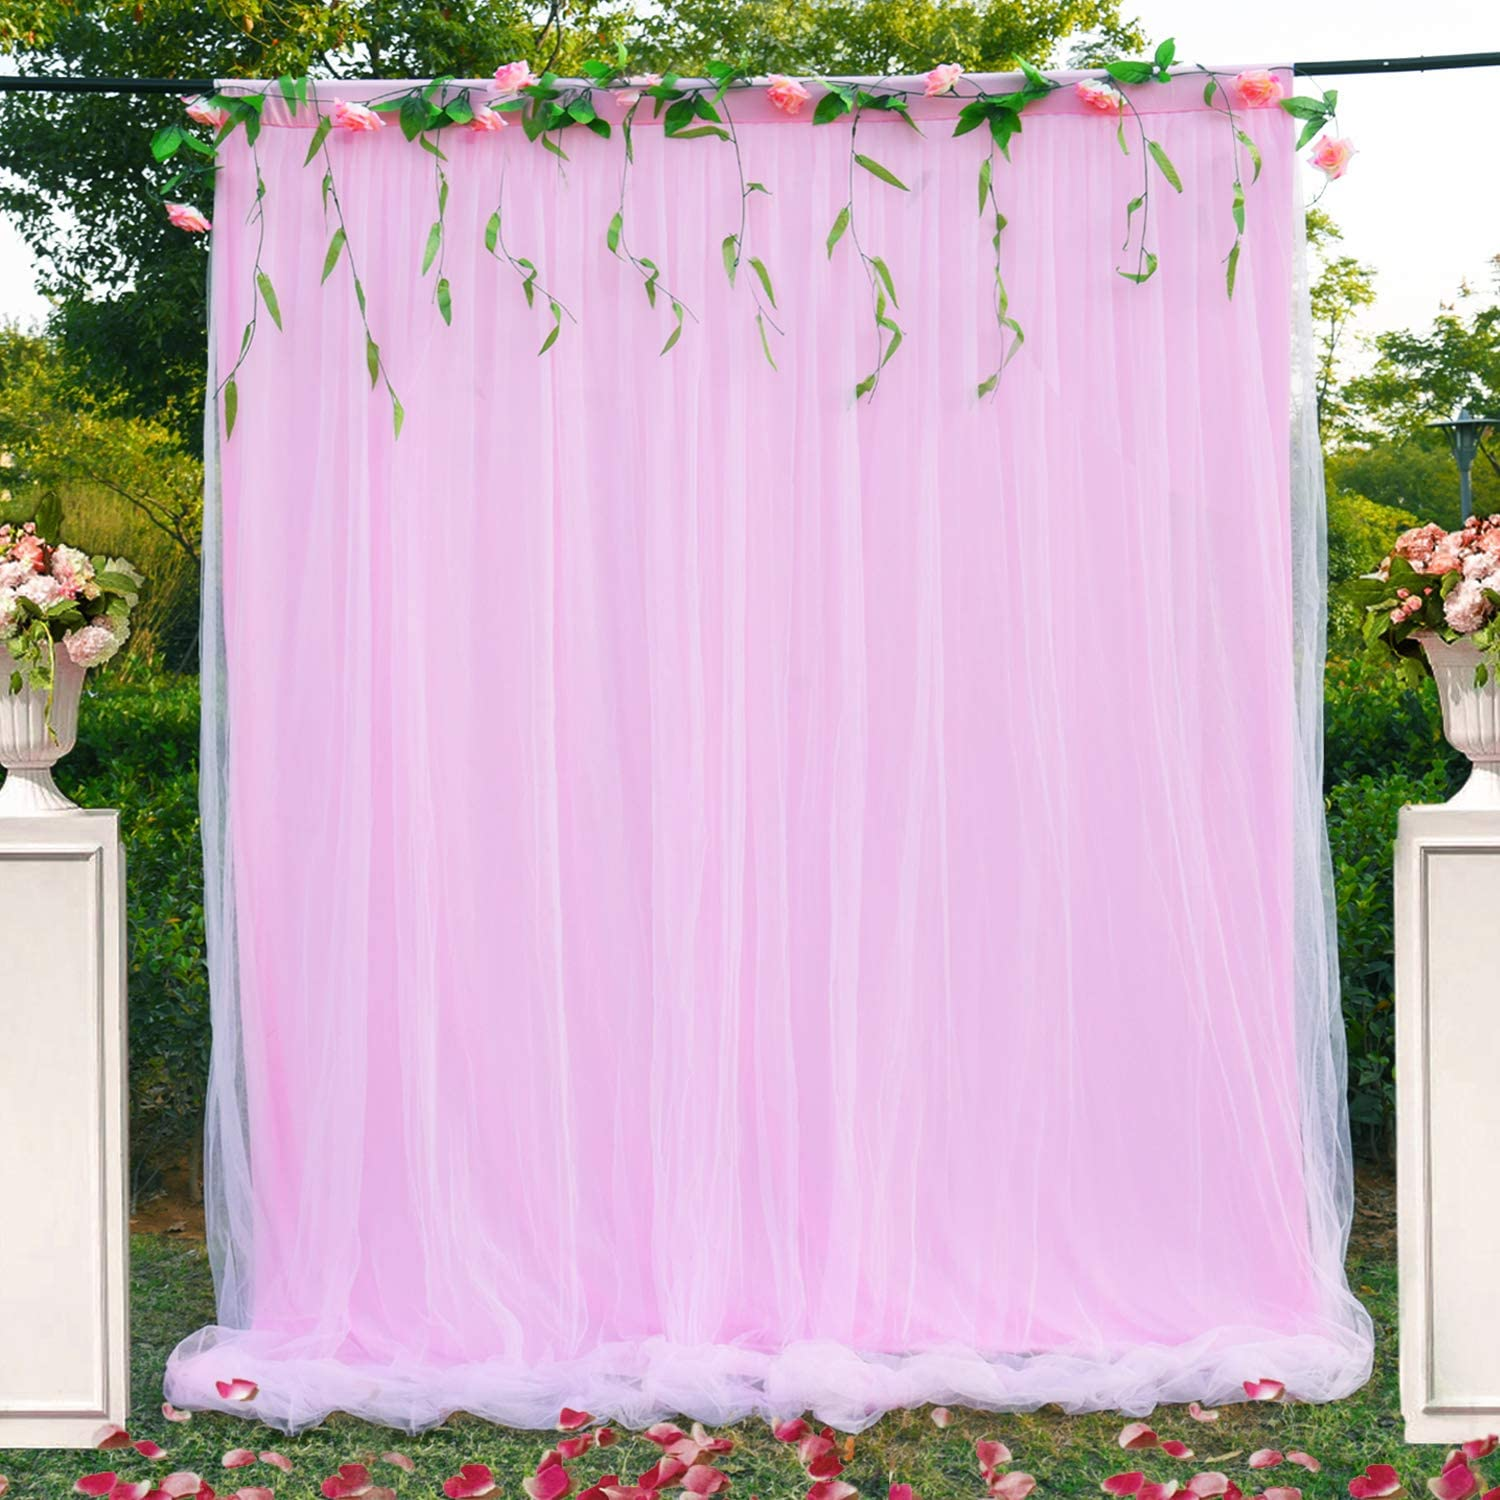 Champagne Backdrop Curtain for Paries Baby Shower Wedding Birthday Party Home Decorations 5 ft X 7 ft